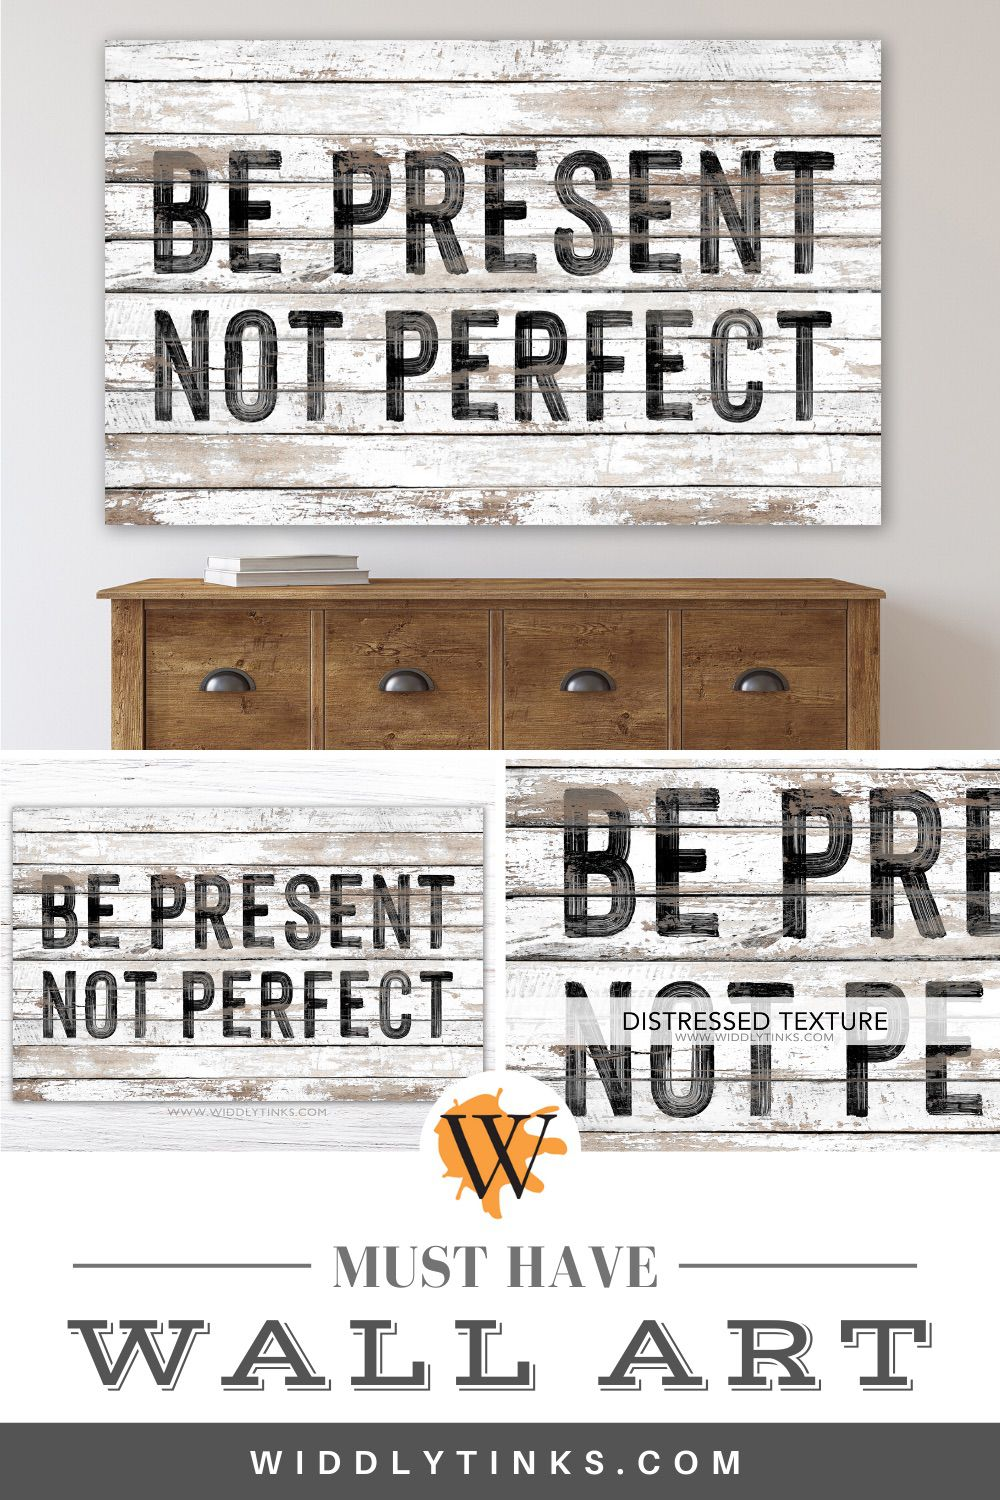 Be present not perfect inspirational quote sign